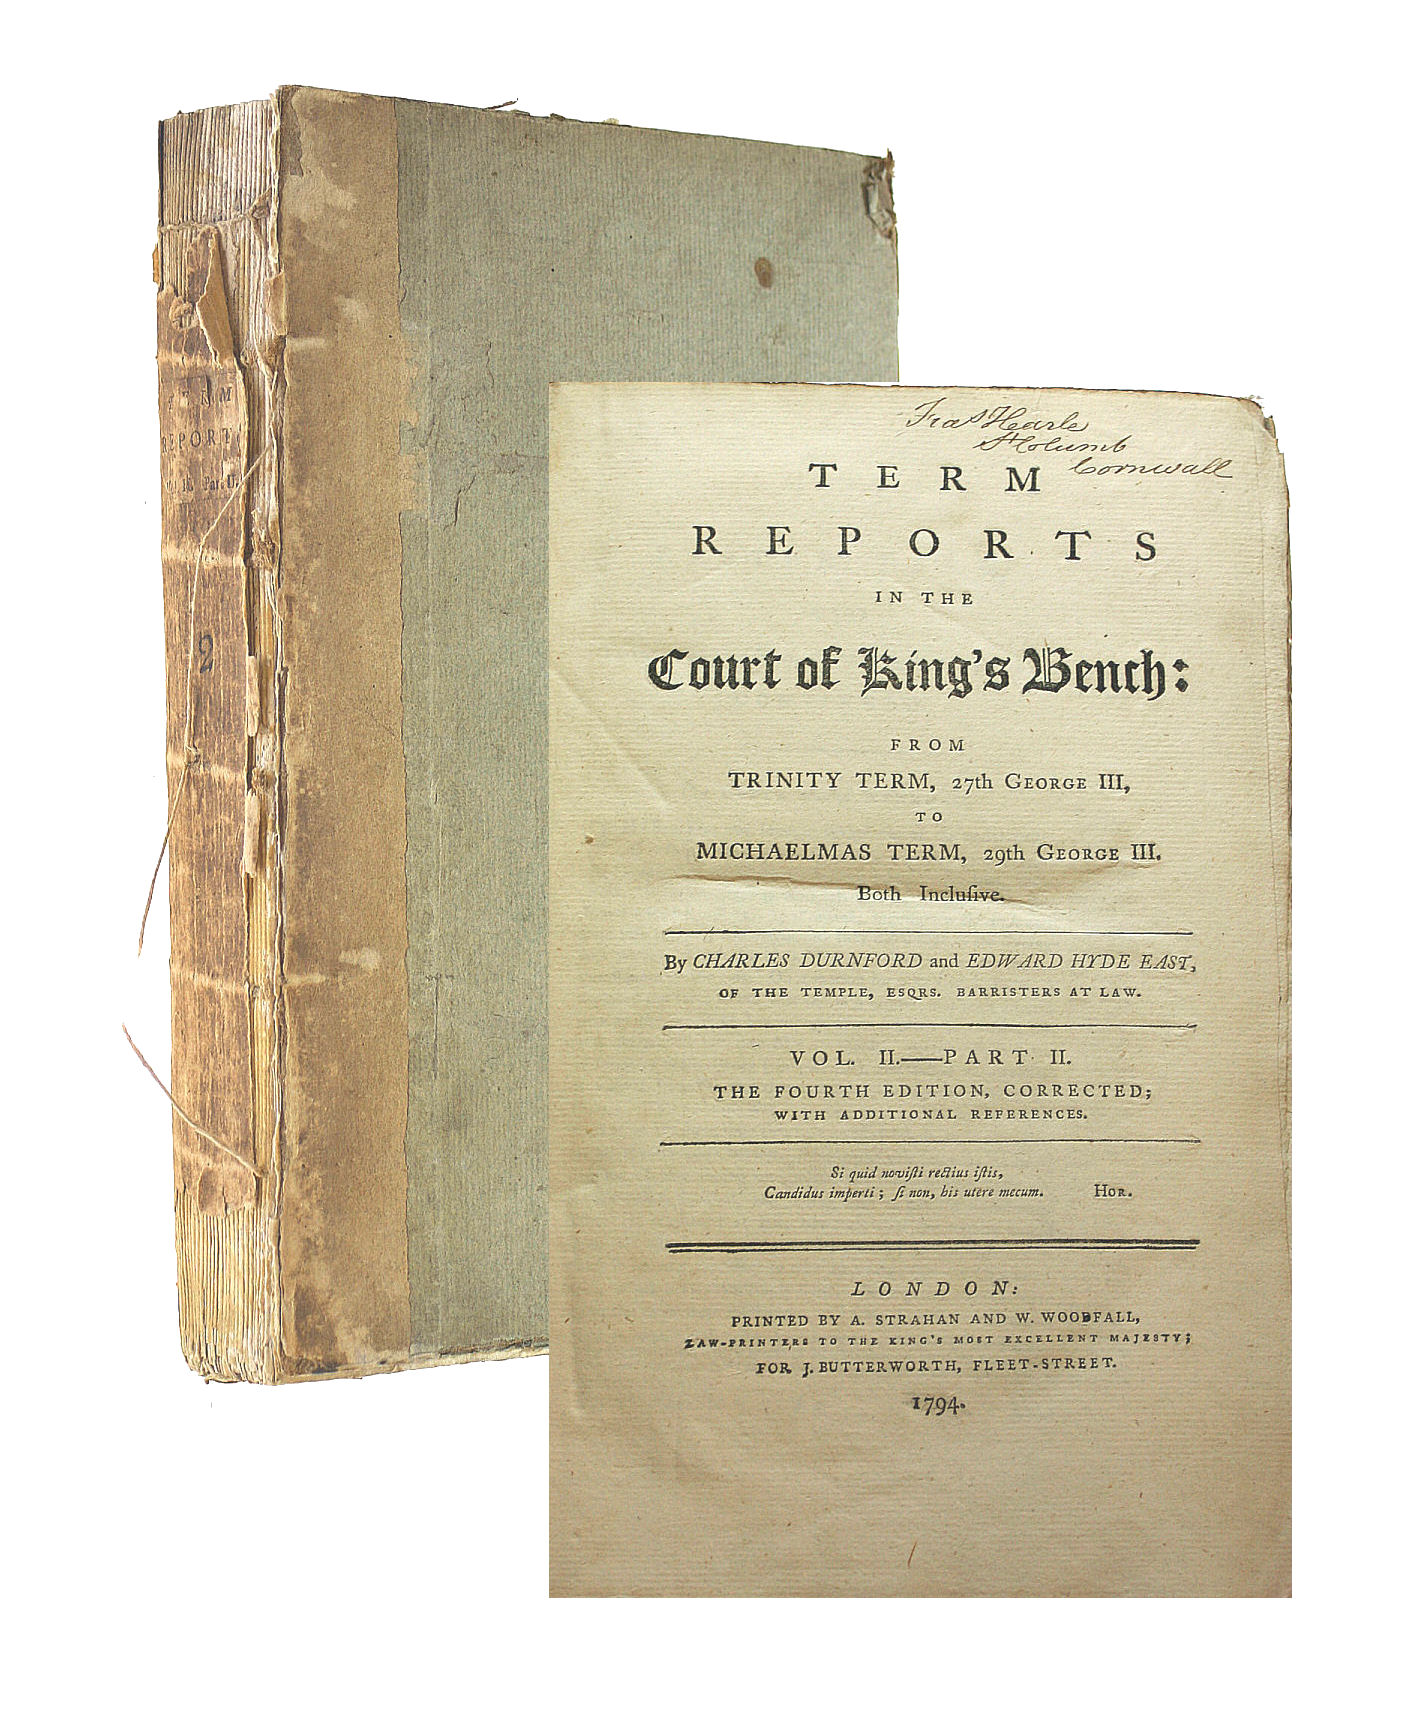 Image for Term Reports In The Court Of King's Bench From Trinity Term, 27Th George Iii To Michaelmas Term, 29Th George Iii: Vol. Ii The Fourth Edition, Corrected